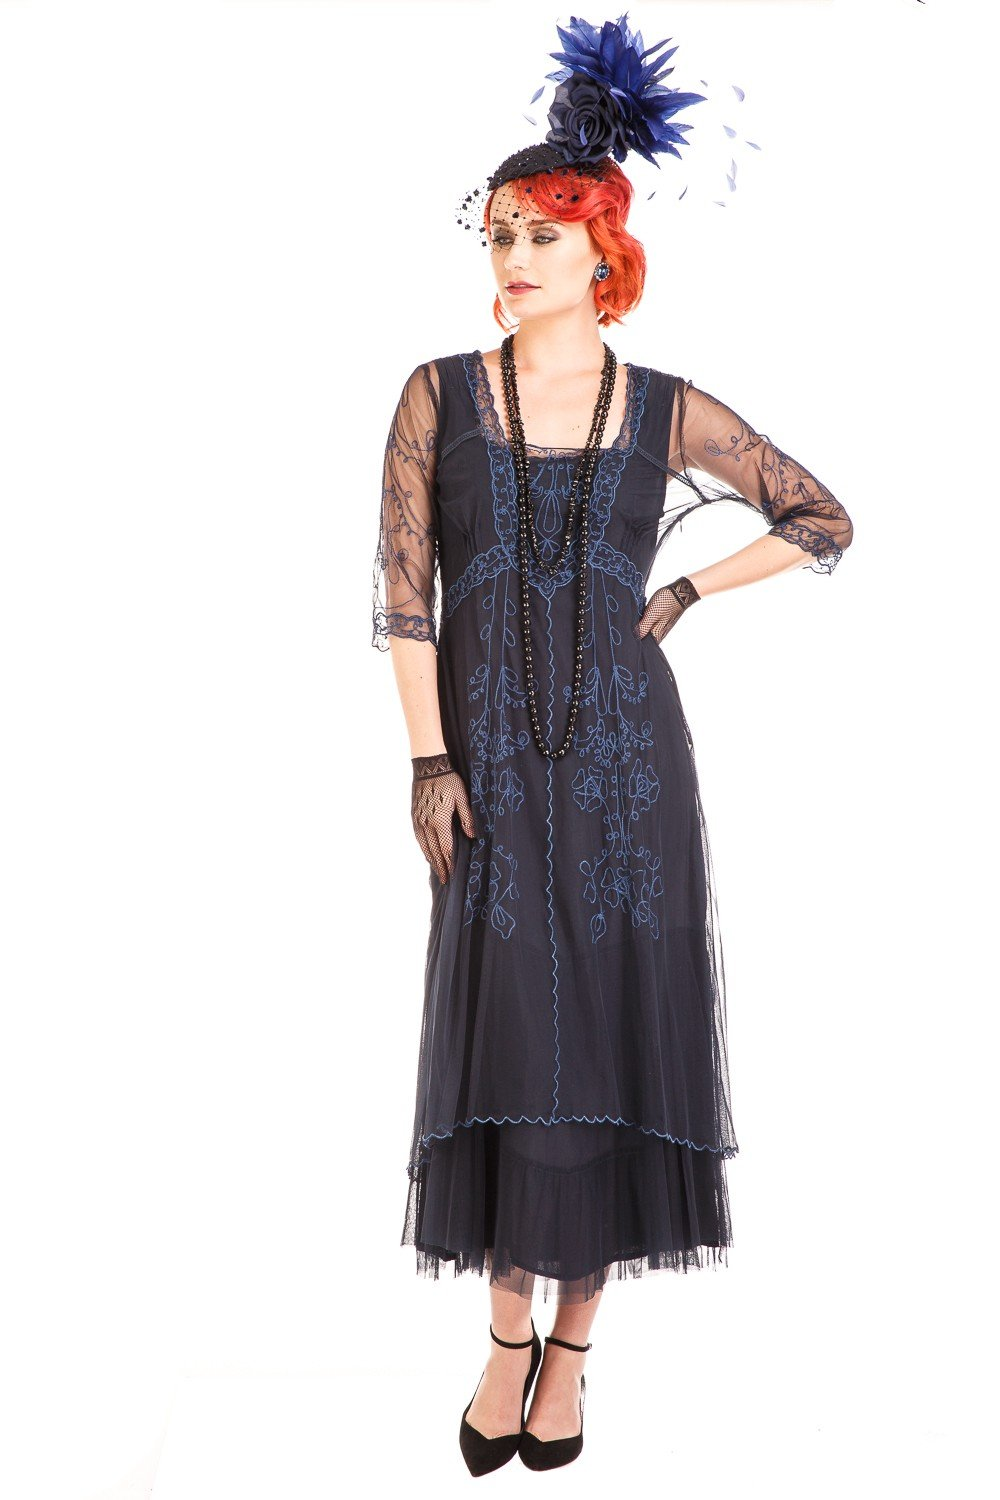 1920s Fashion & Clothing | Roaring 20s Attire Mary Vintage Style Party Dress in Sapphire by Nataya $265.00 AT vintagedancer.com